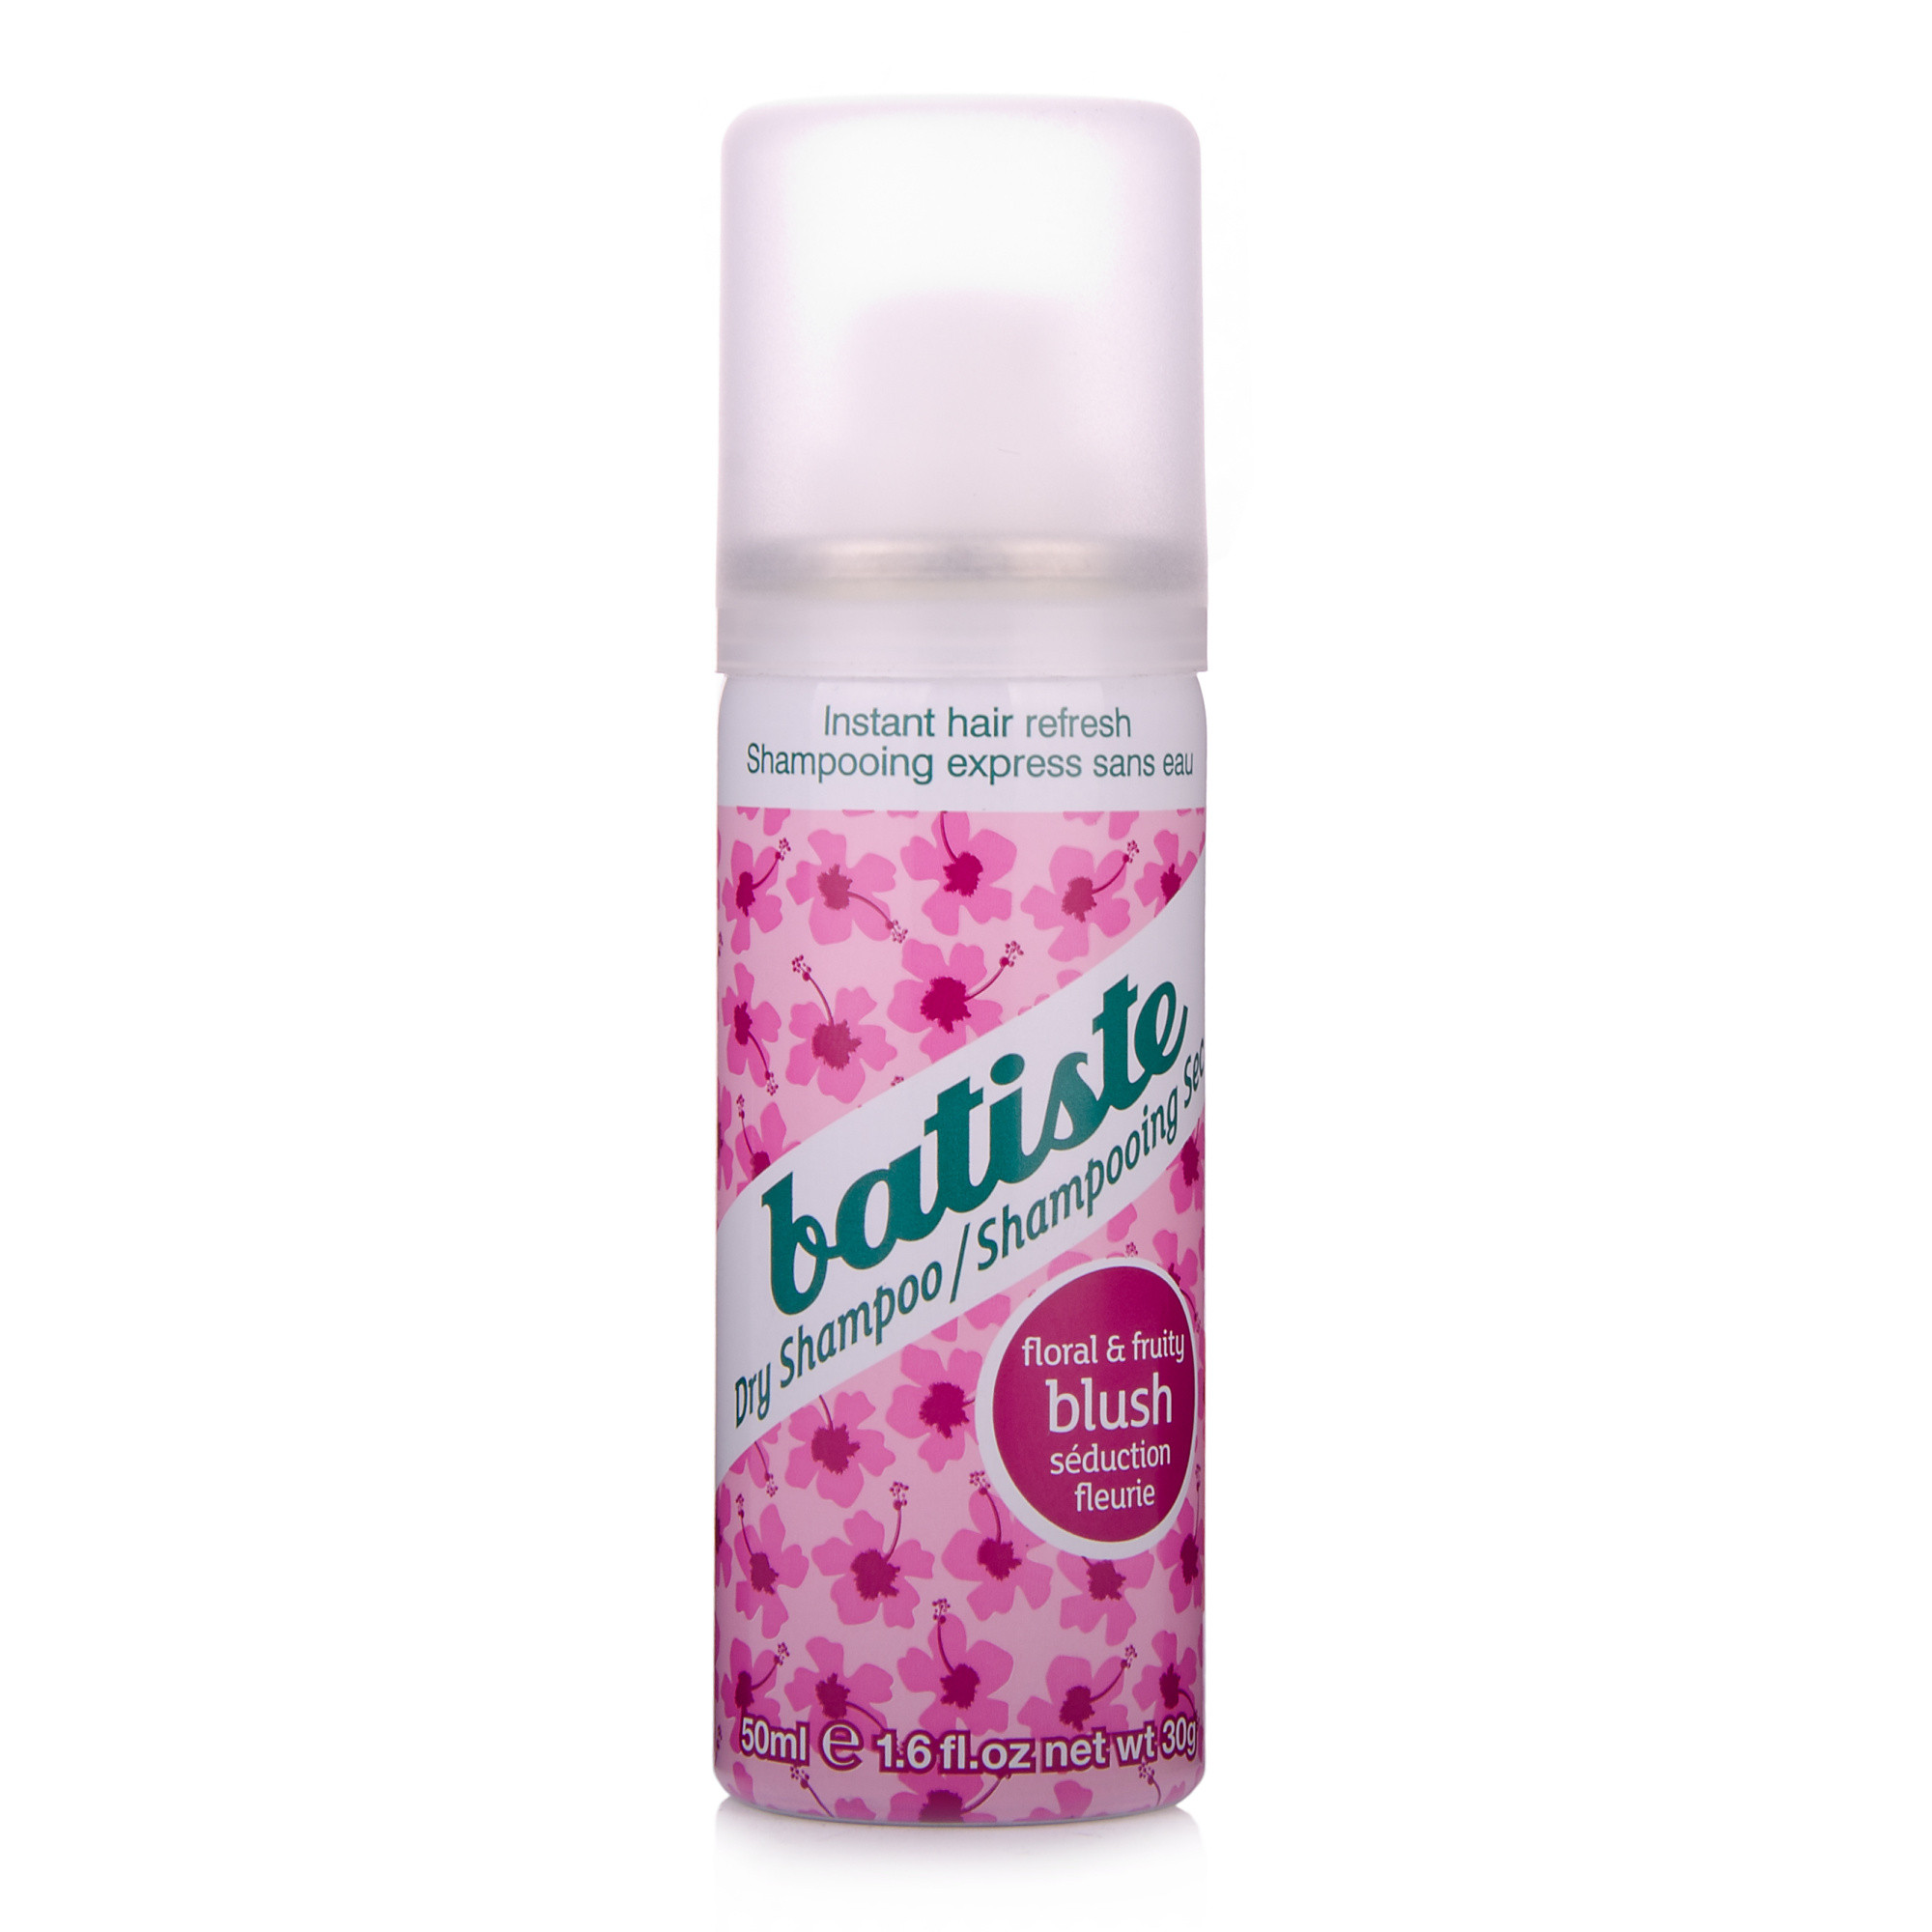 Batiste Dry Shampoo Blush Travel Size